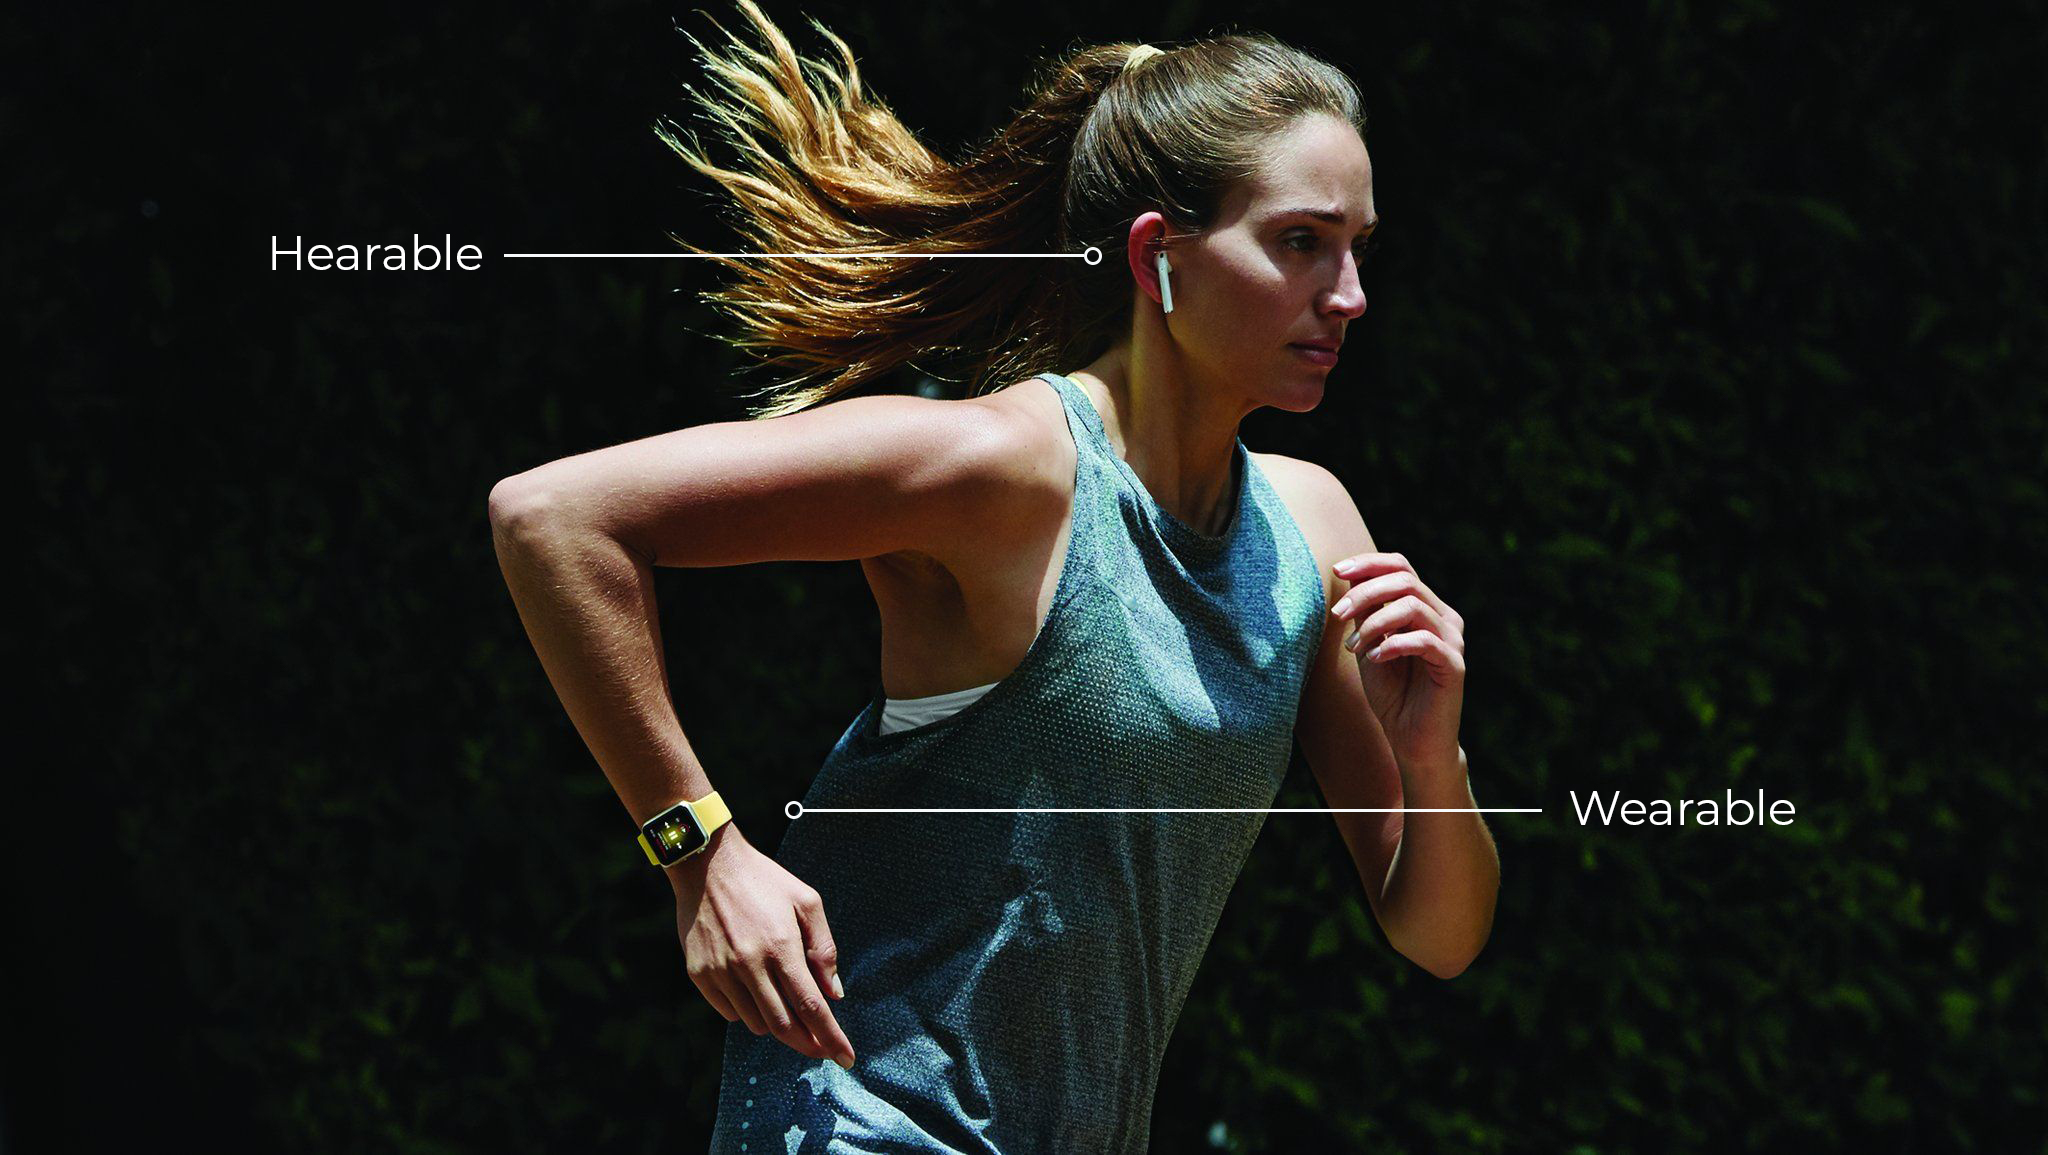 A woman jogs wearing hearables and wearables.